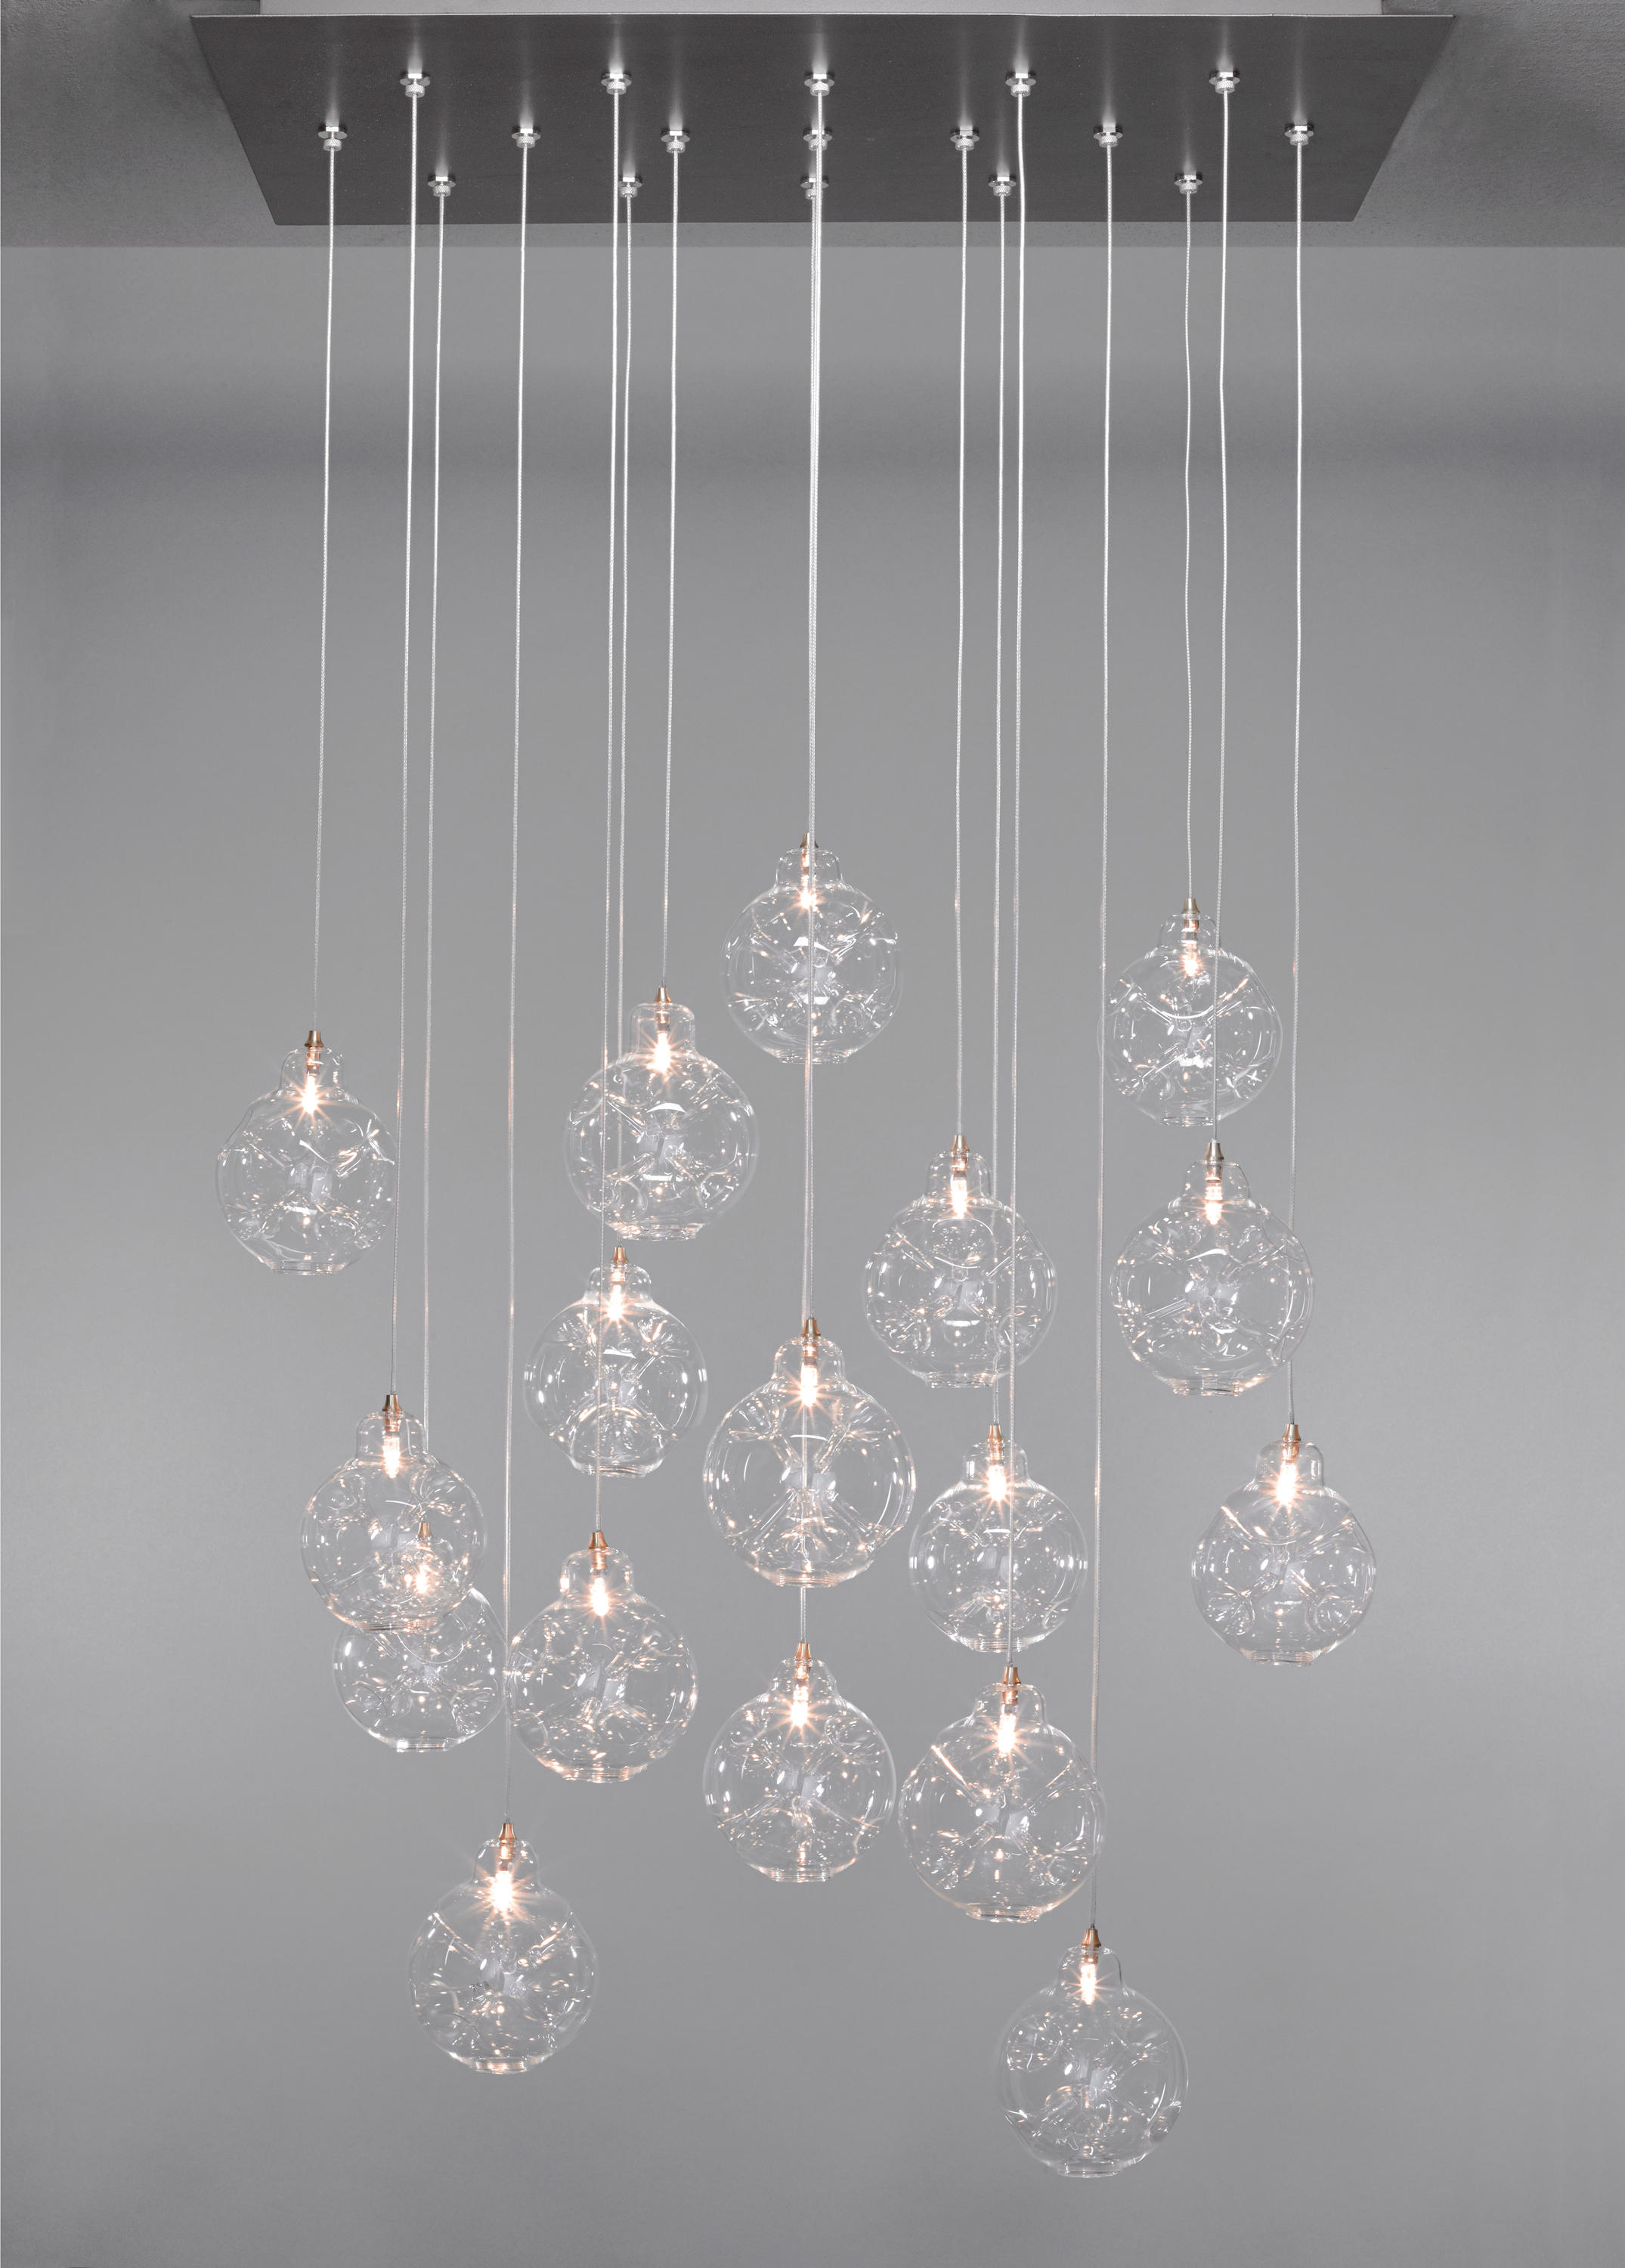 CLOUD - Suspended lights from Shakuff | Architonic